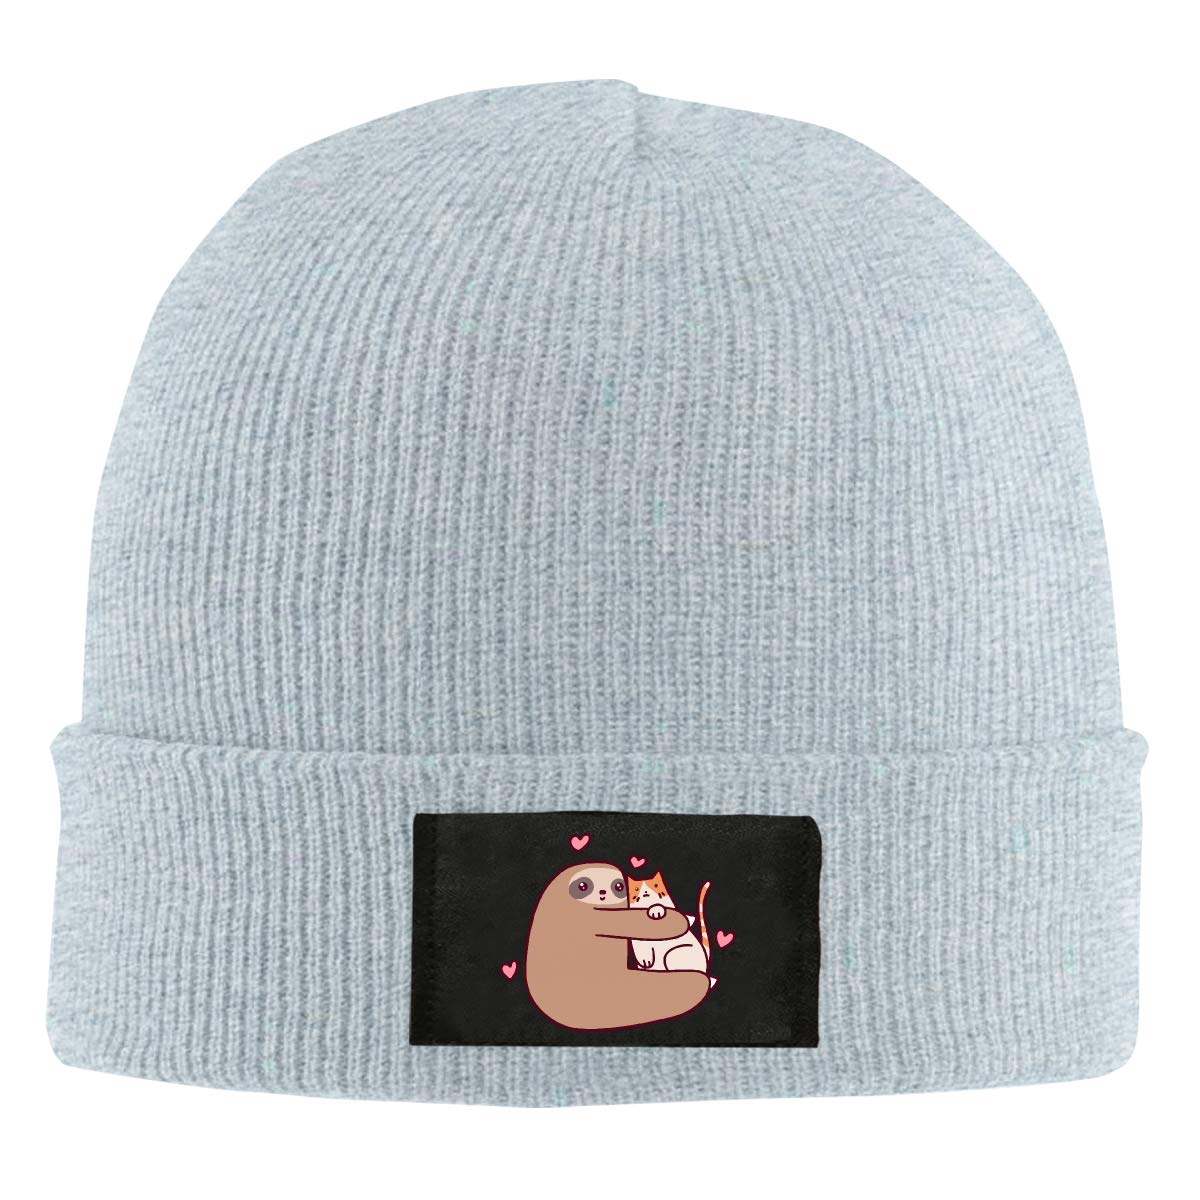 100/% Acrylic Thick Beanies Cap Unisex Sloth Loves Cat Knit Cap